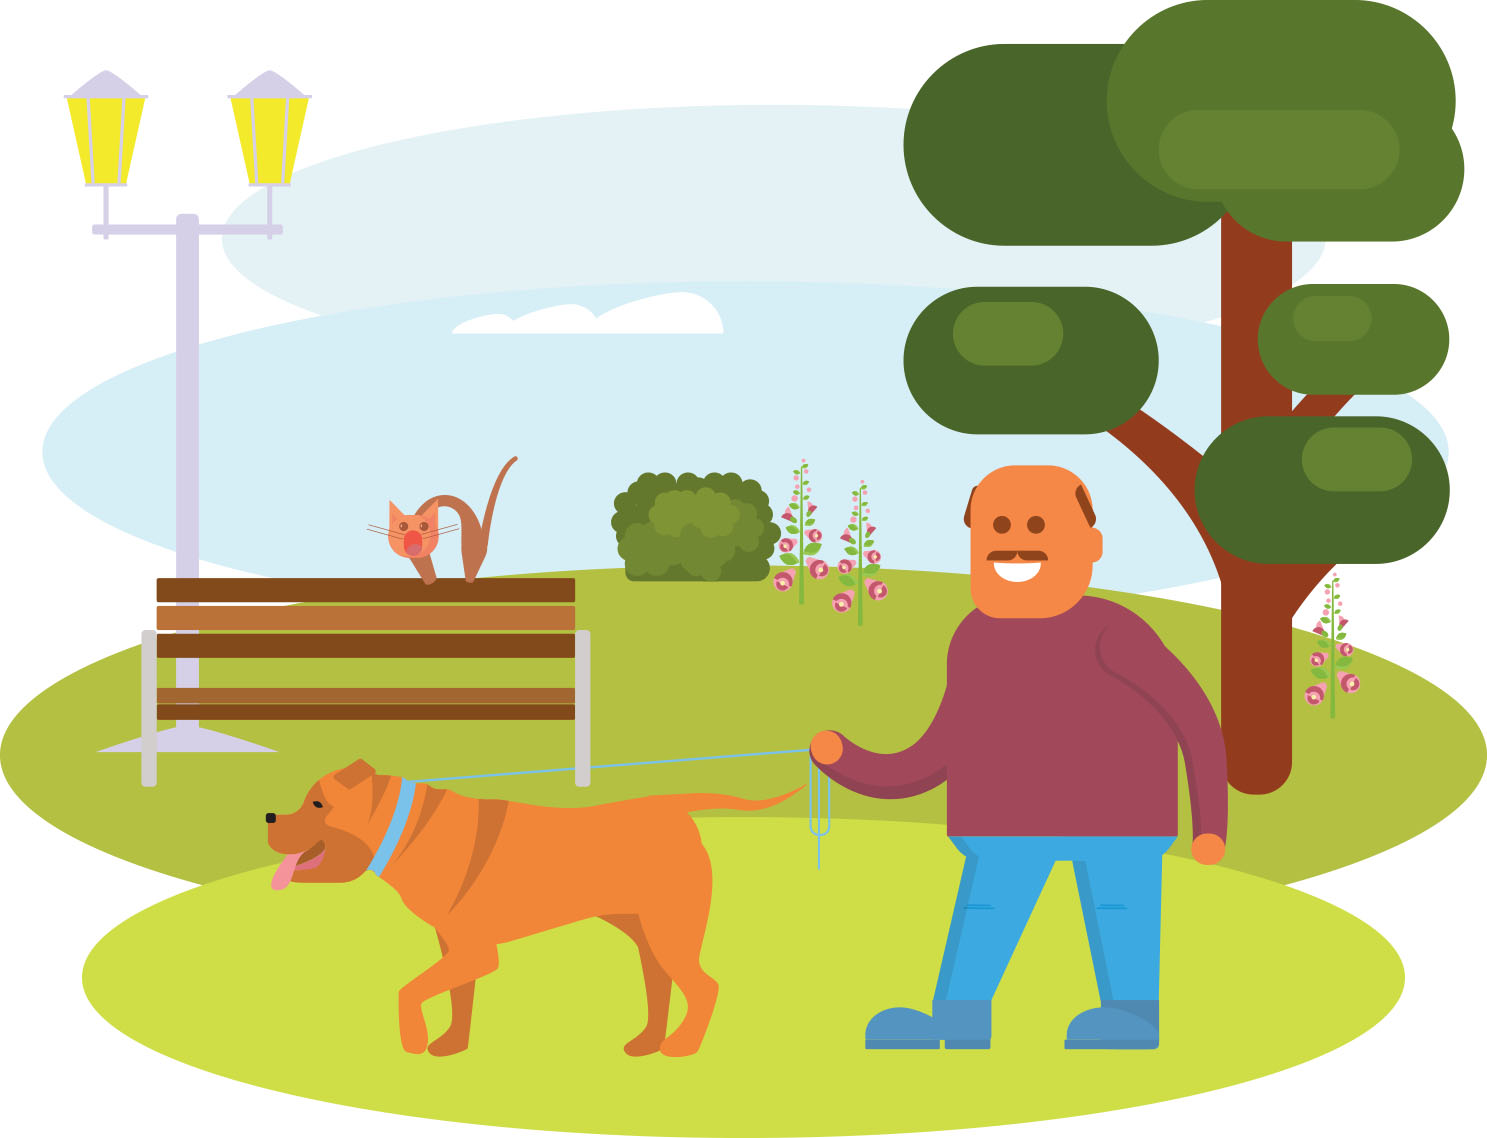 Workout clipart moderate exercise. Walking the dog yes